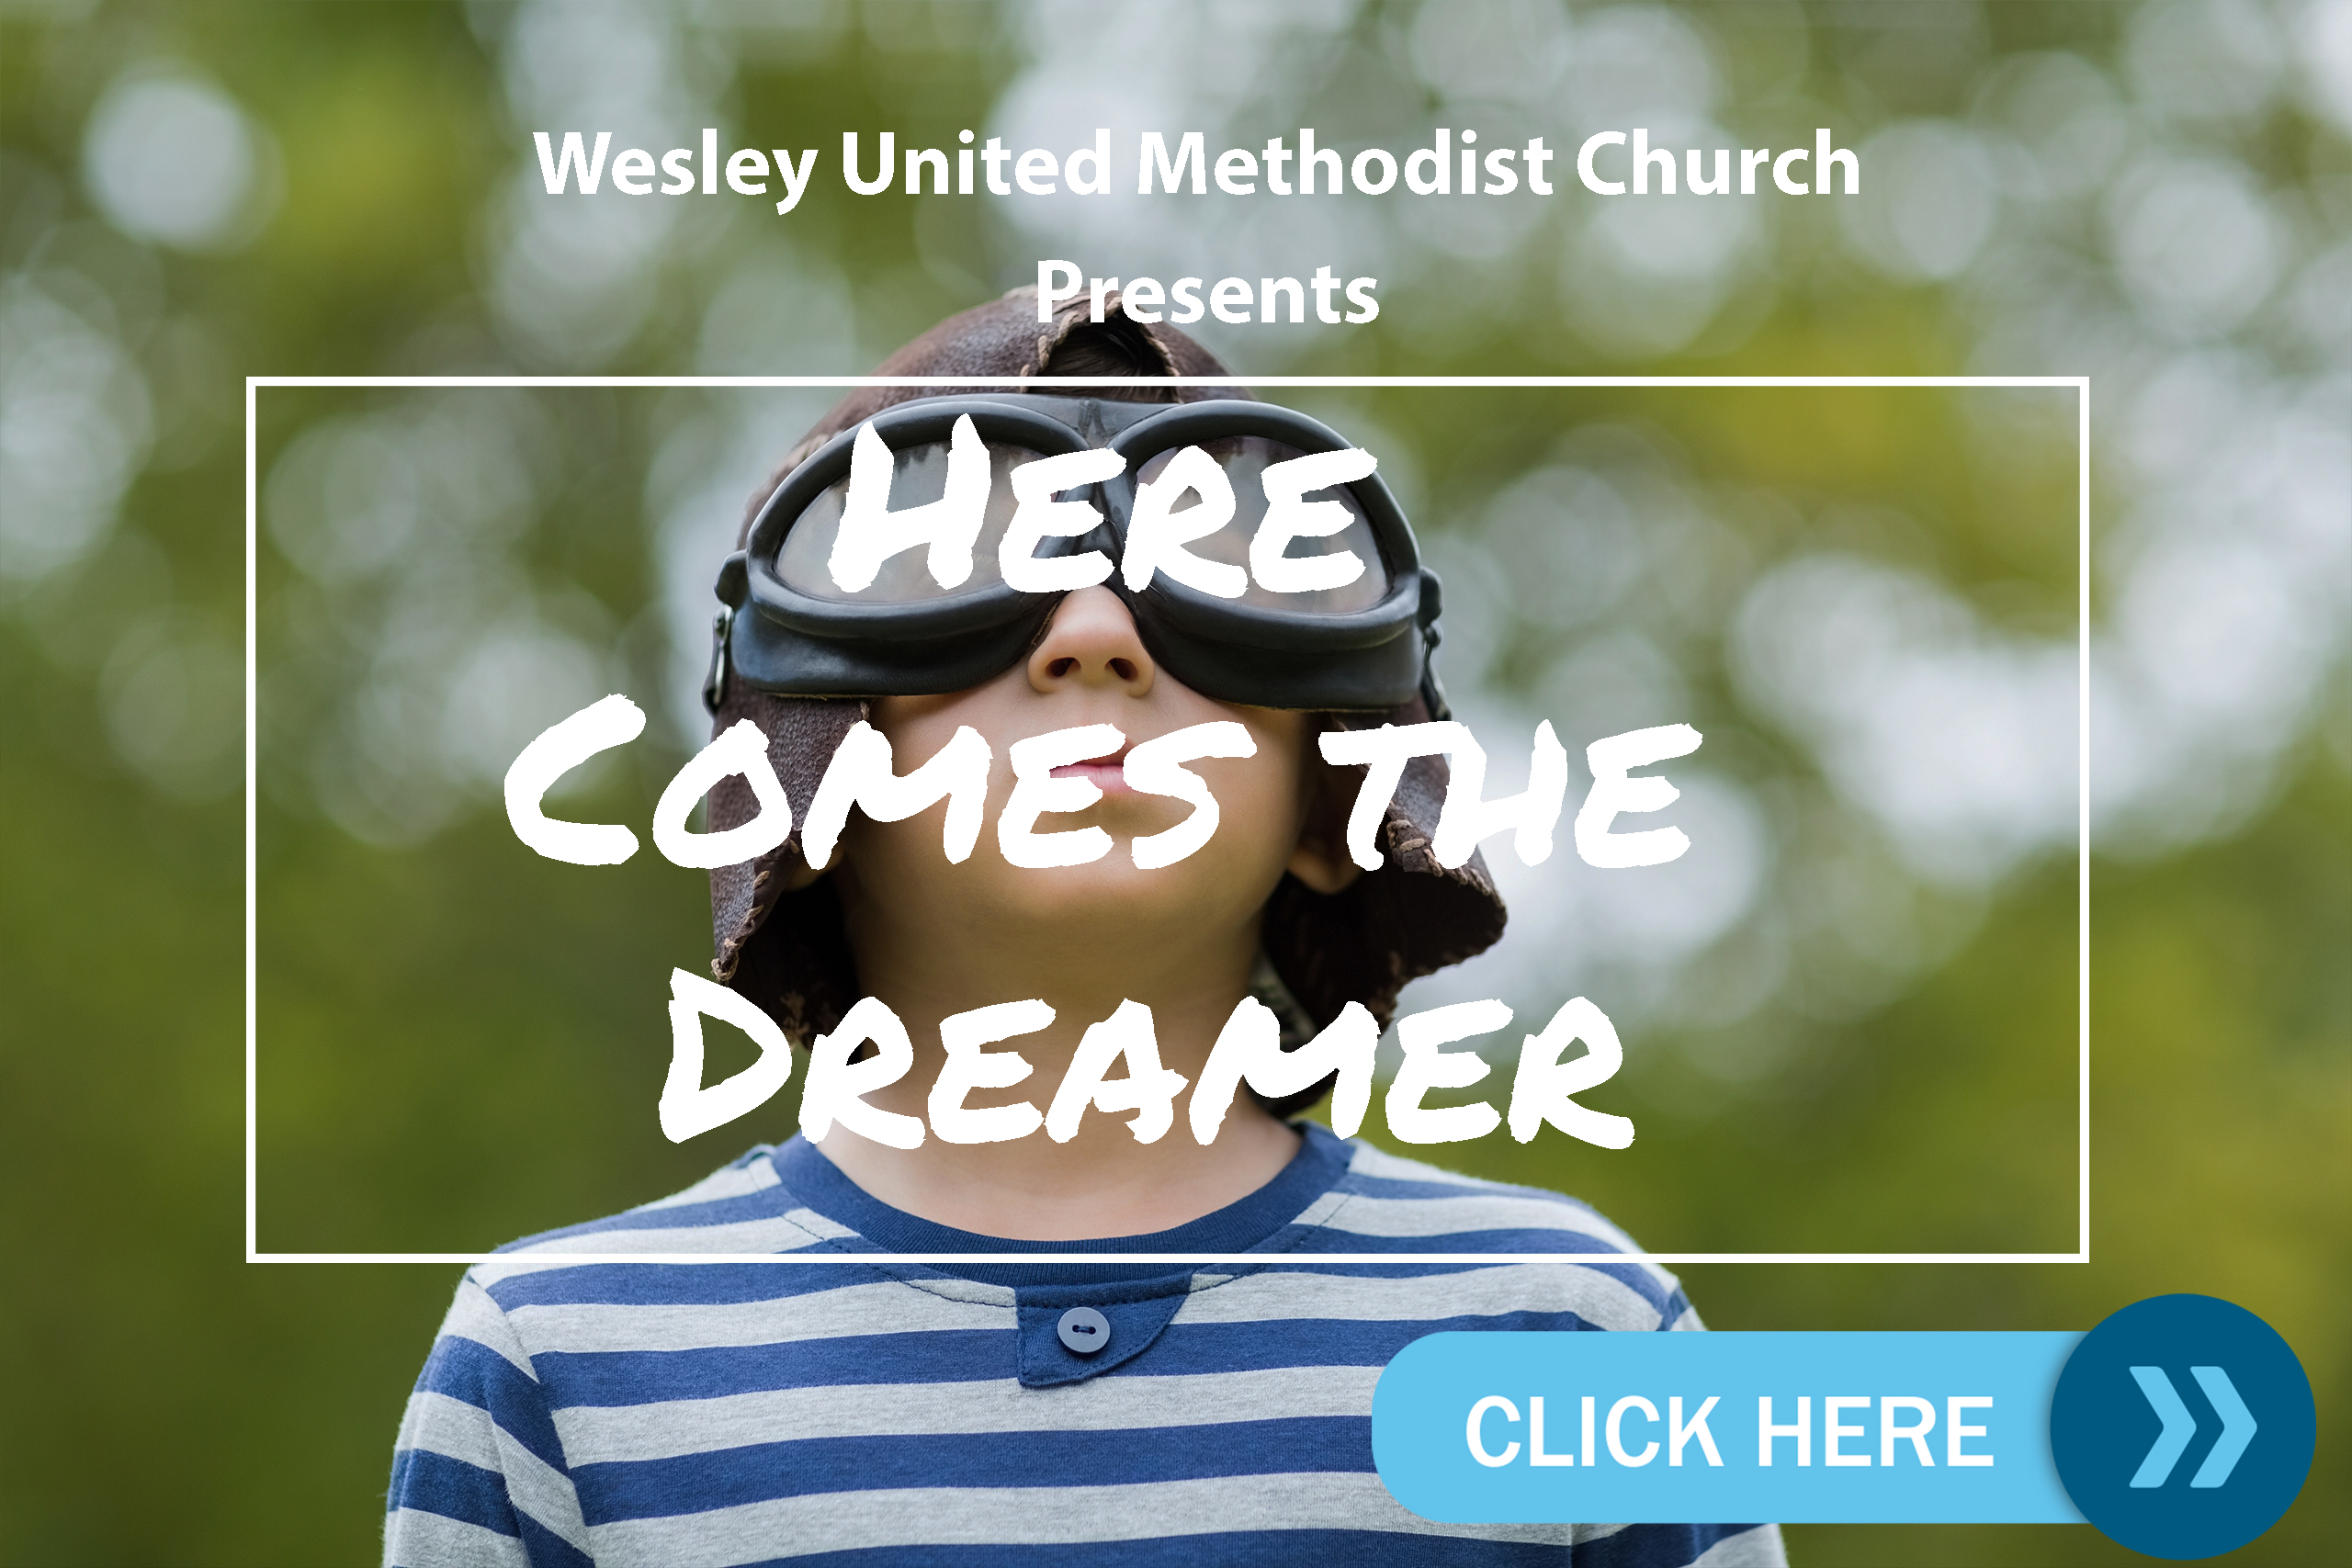 Here Comes the Dreamer-Recovered-Recovered-Recovered-Recovered-Recovered-Recovered4B904F68BA67CE7C8449C40D3C0A1C92-Recovered-Recovered